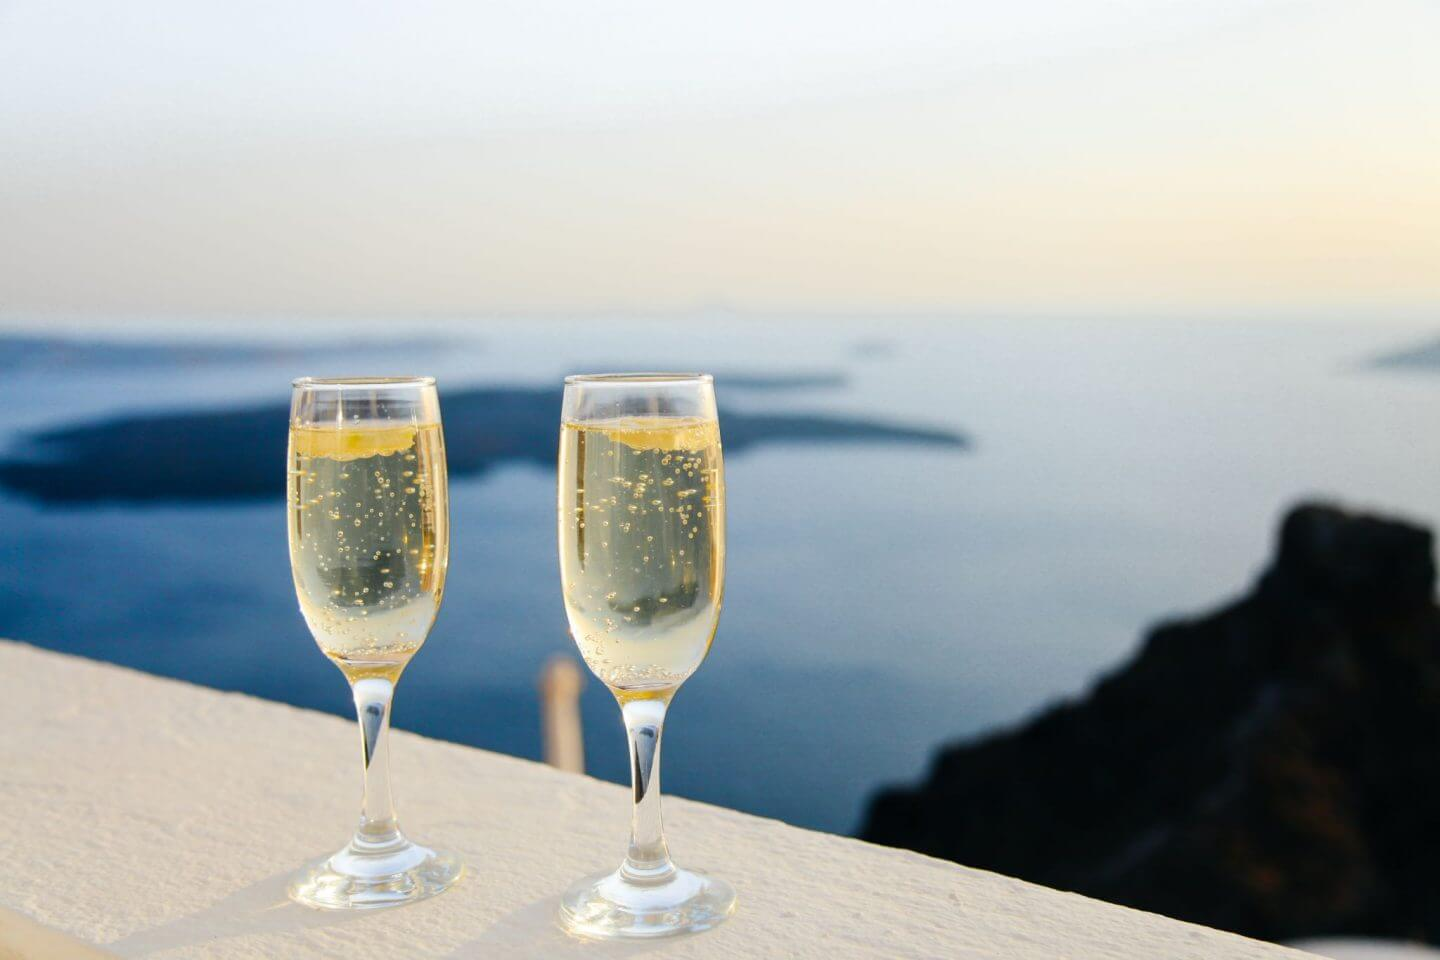 champagne glasses on honeymoon in Greece